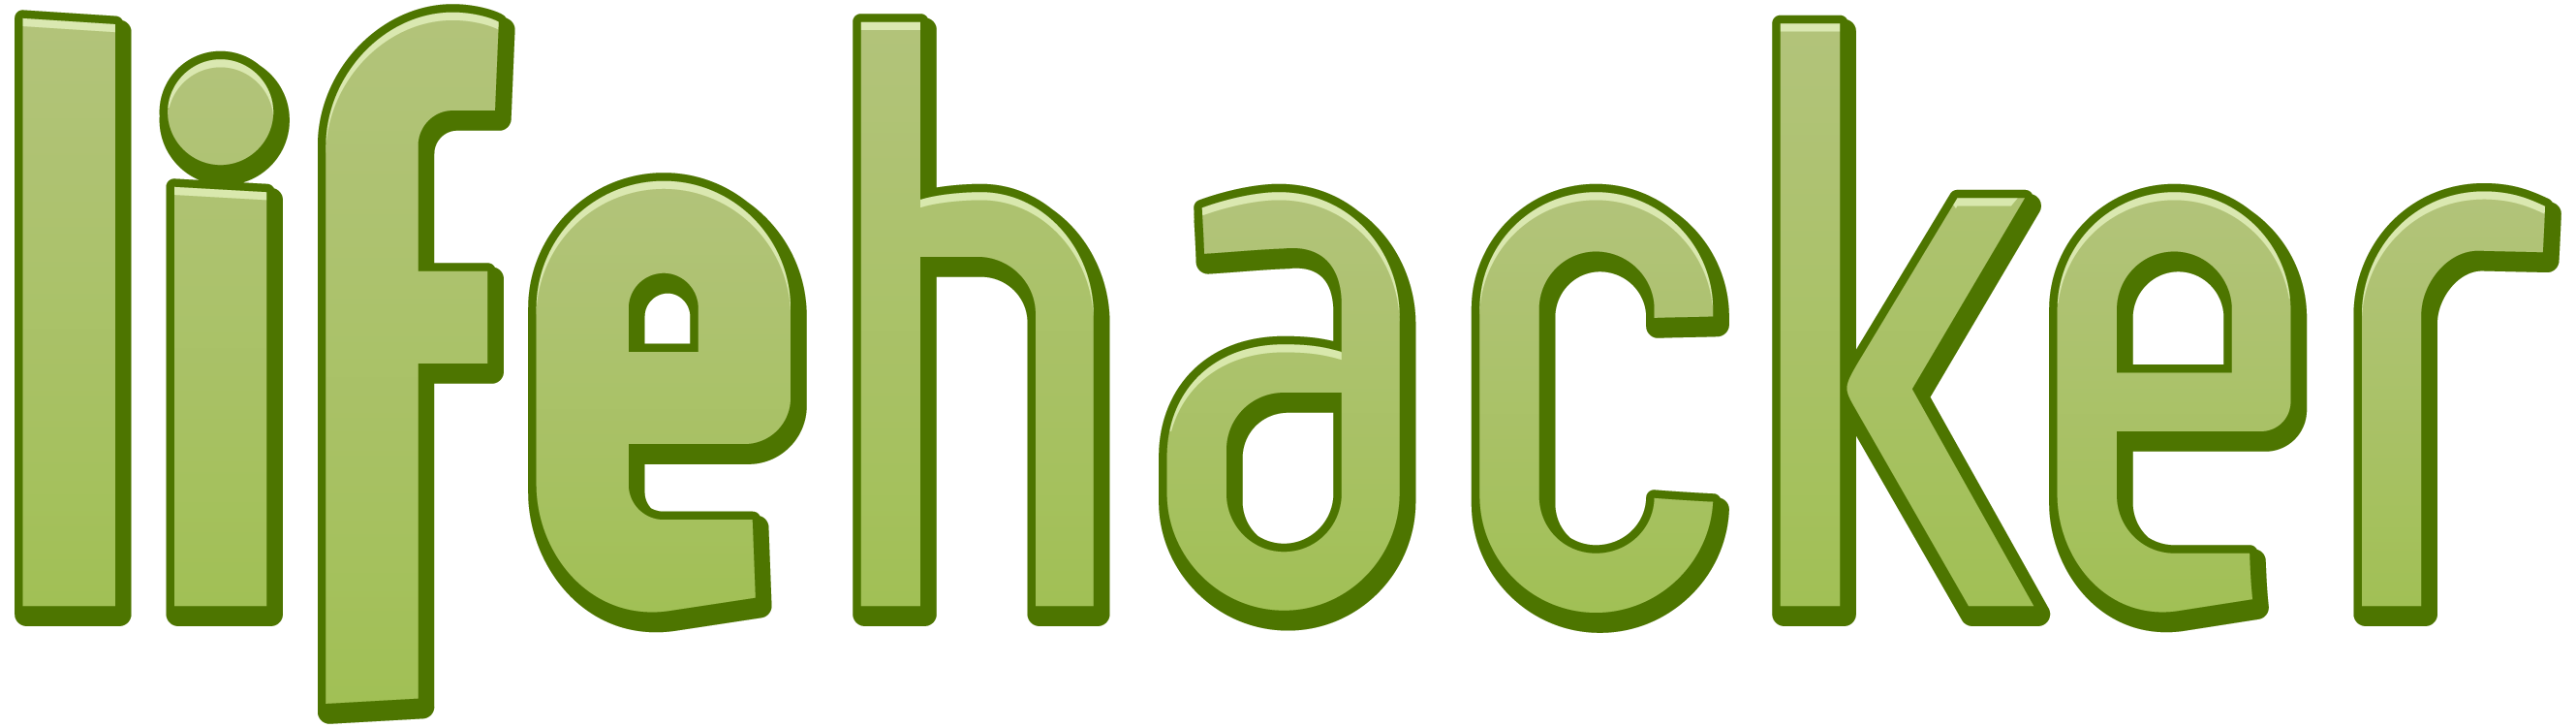 Image result for lifehacker logo png